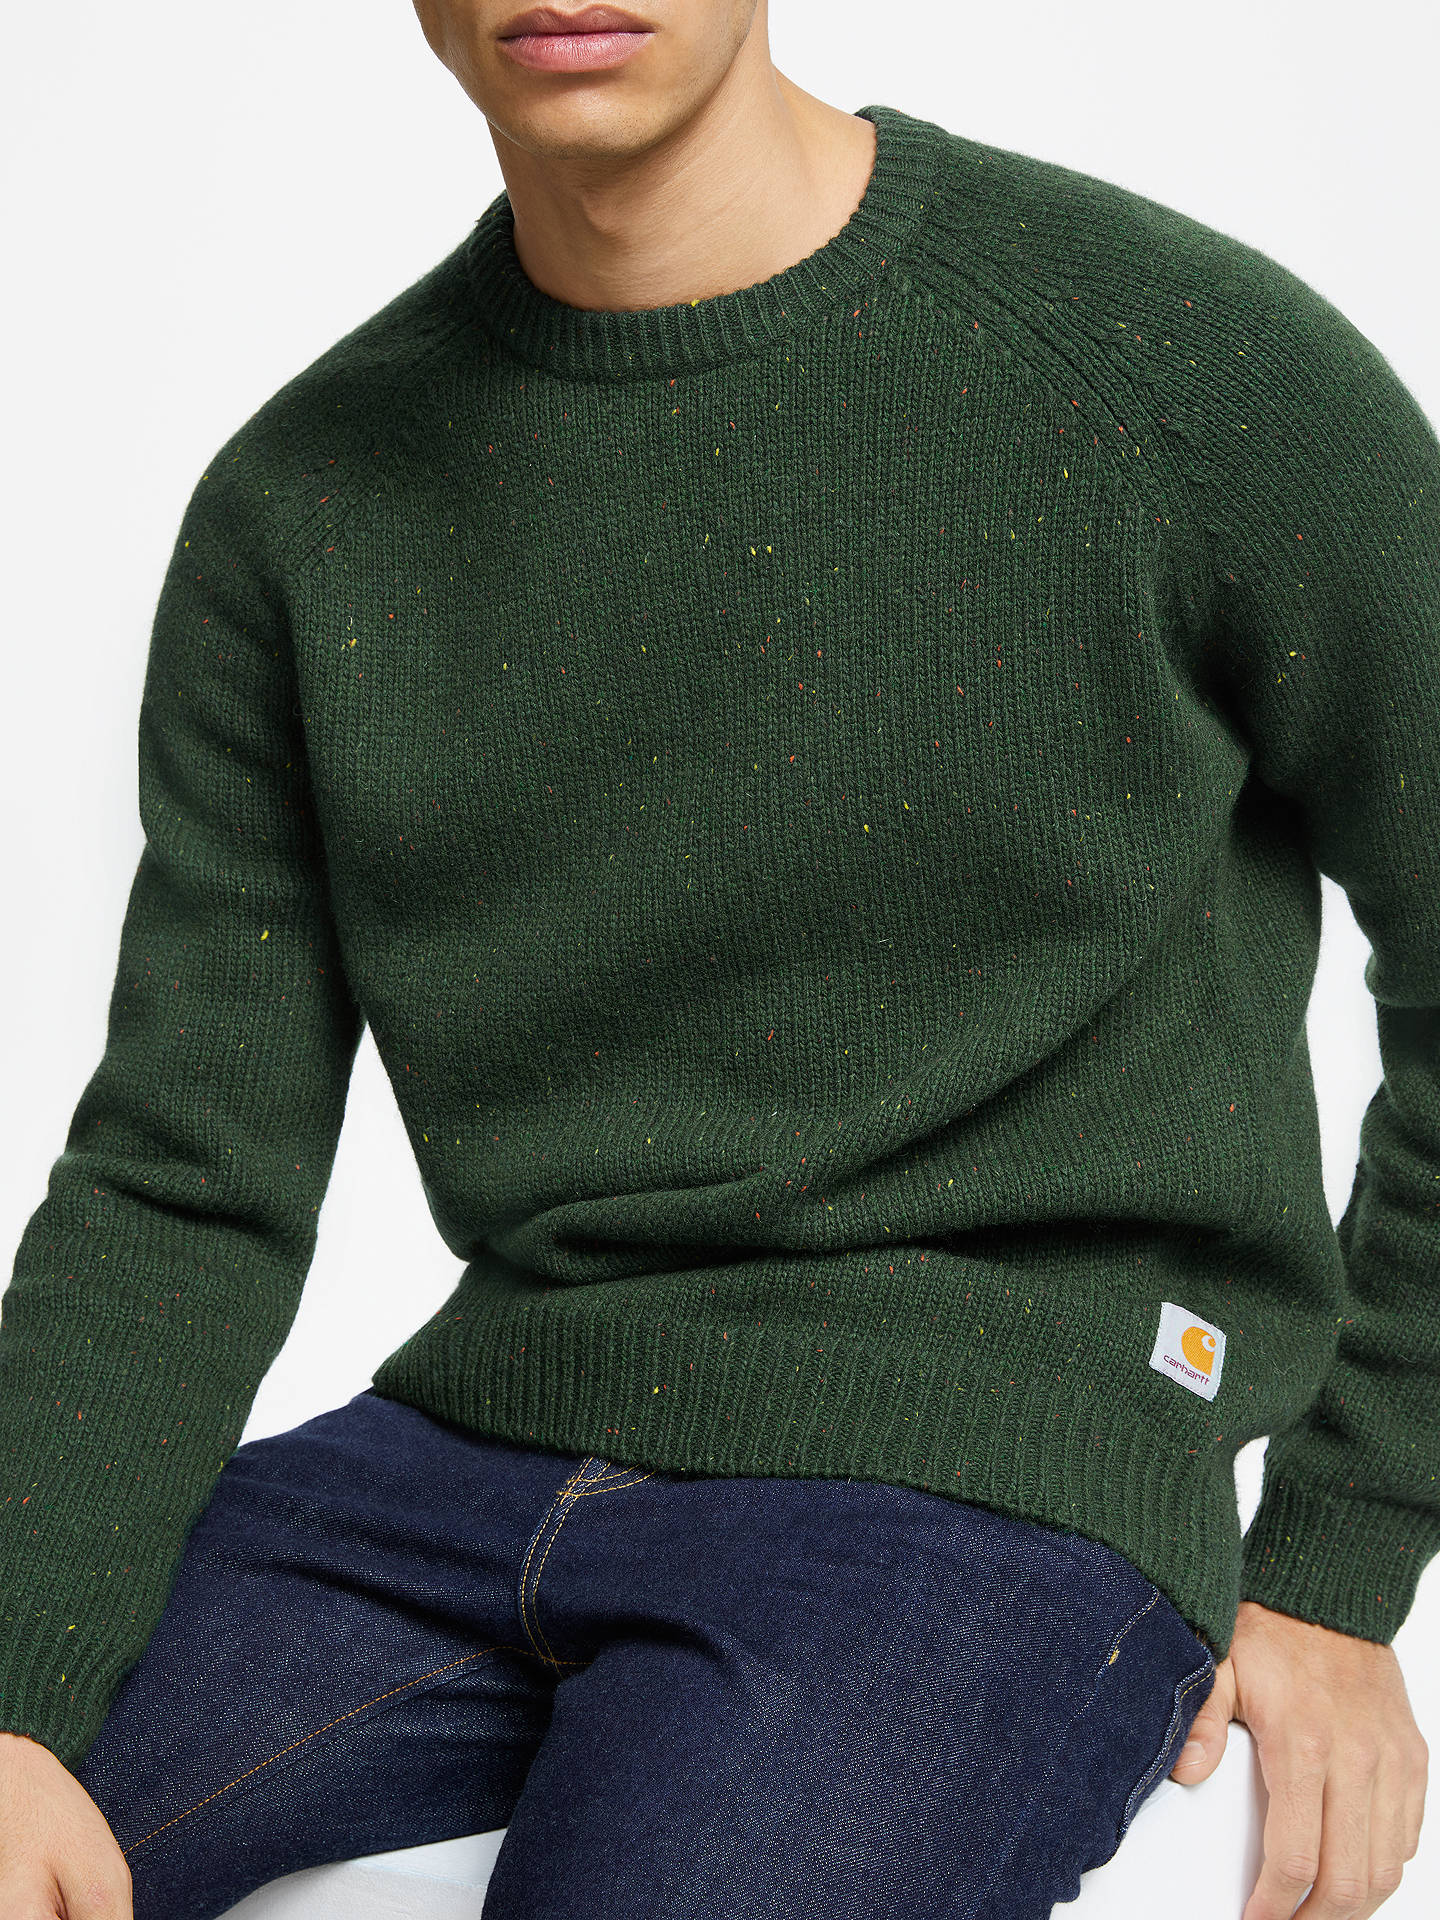 Knit Crew Carhartt Flecked Loden Jumper Neck Wip Heather Anglistic twqX1